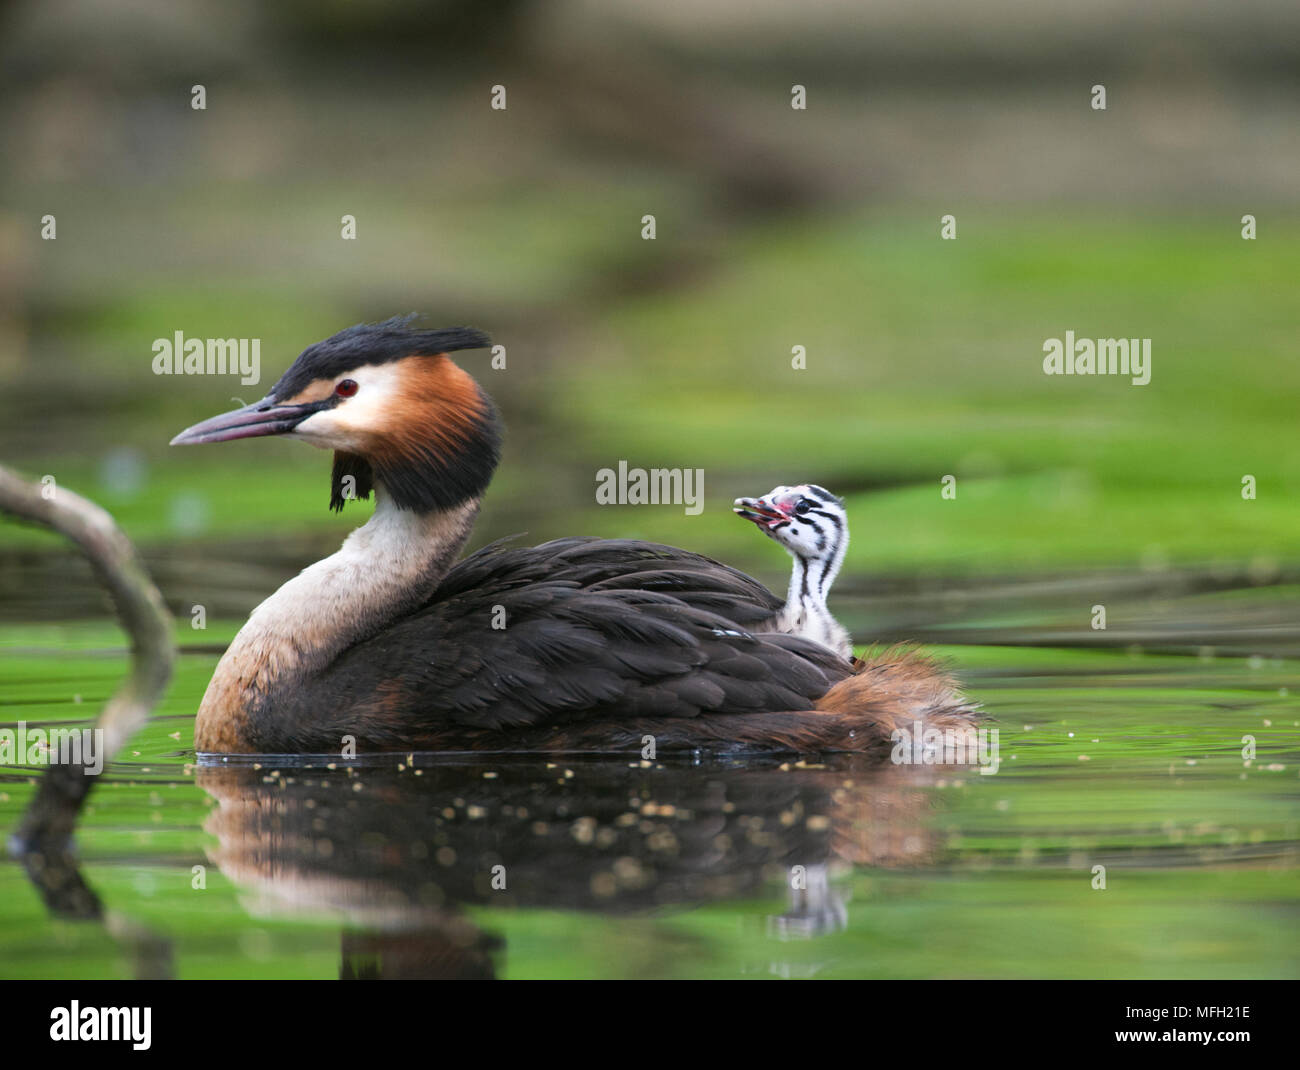 Great Crested Grebe, (Podiceps cristatus), parent bird carrying a single chick on its back, Regents Park, London, Briitish Isles, UK - Stock Image